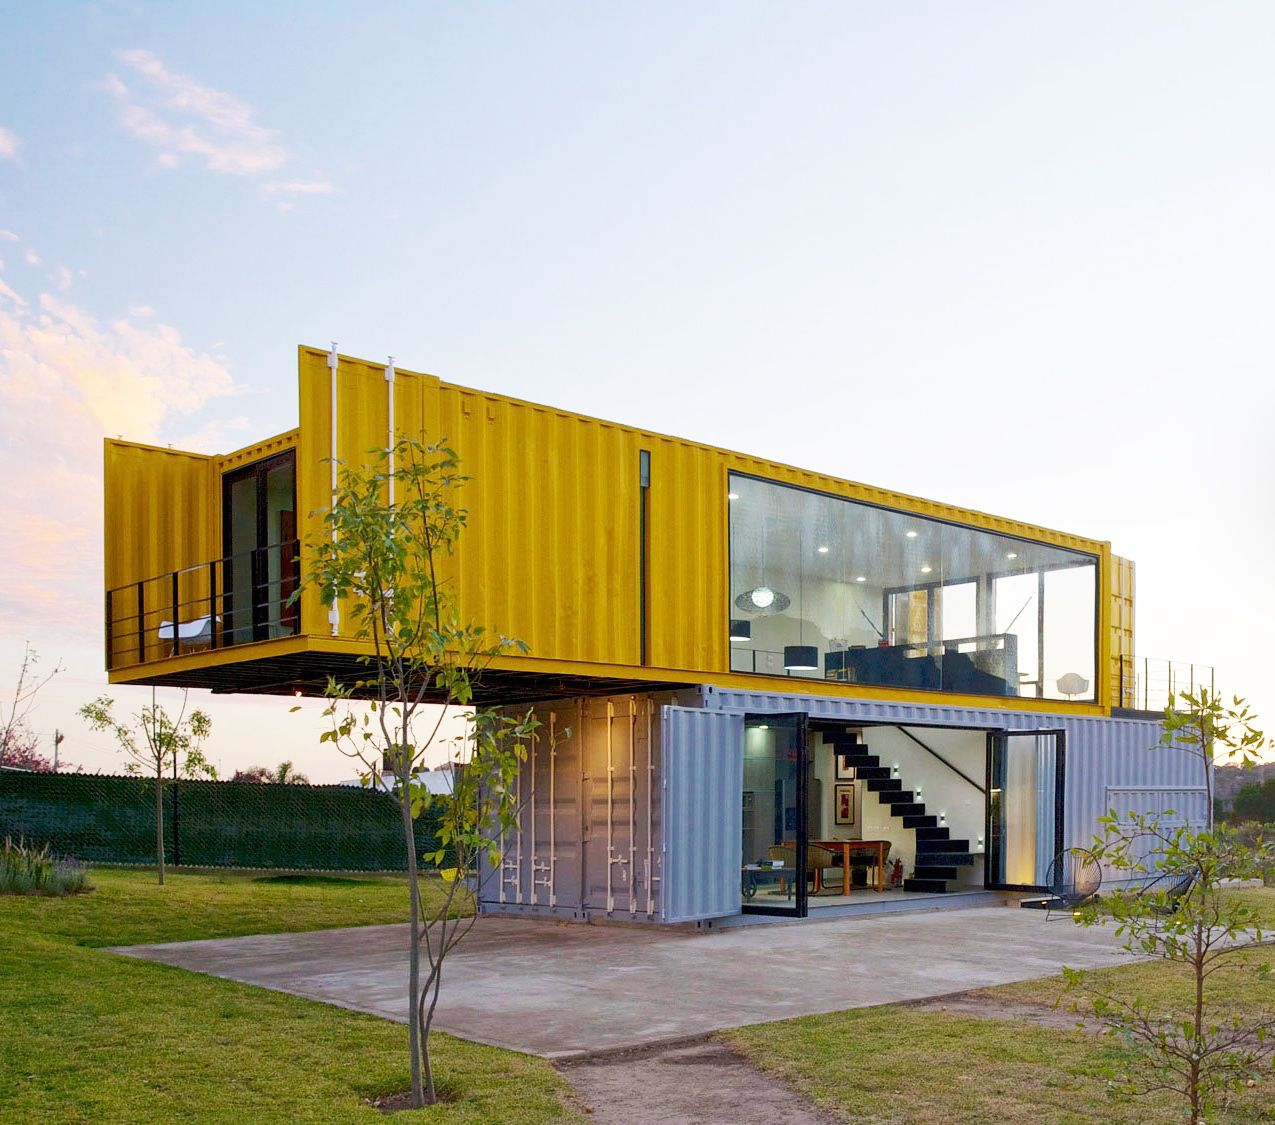 Steel Containers Homes 4 shipping containers prefab plus 1 for guests | remote, house and